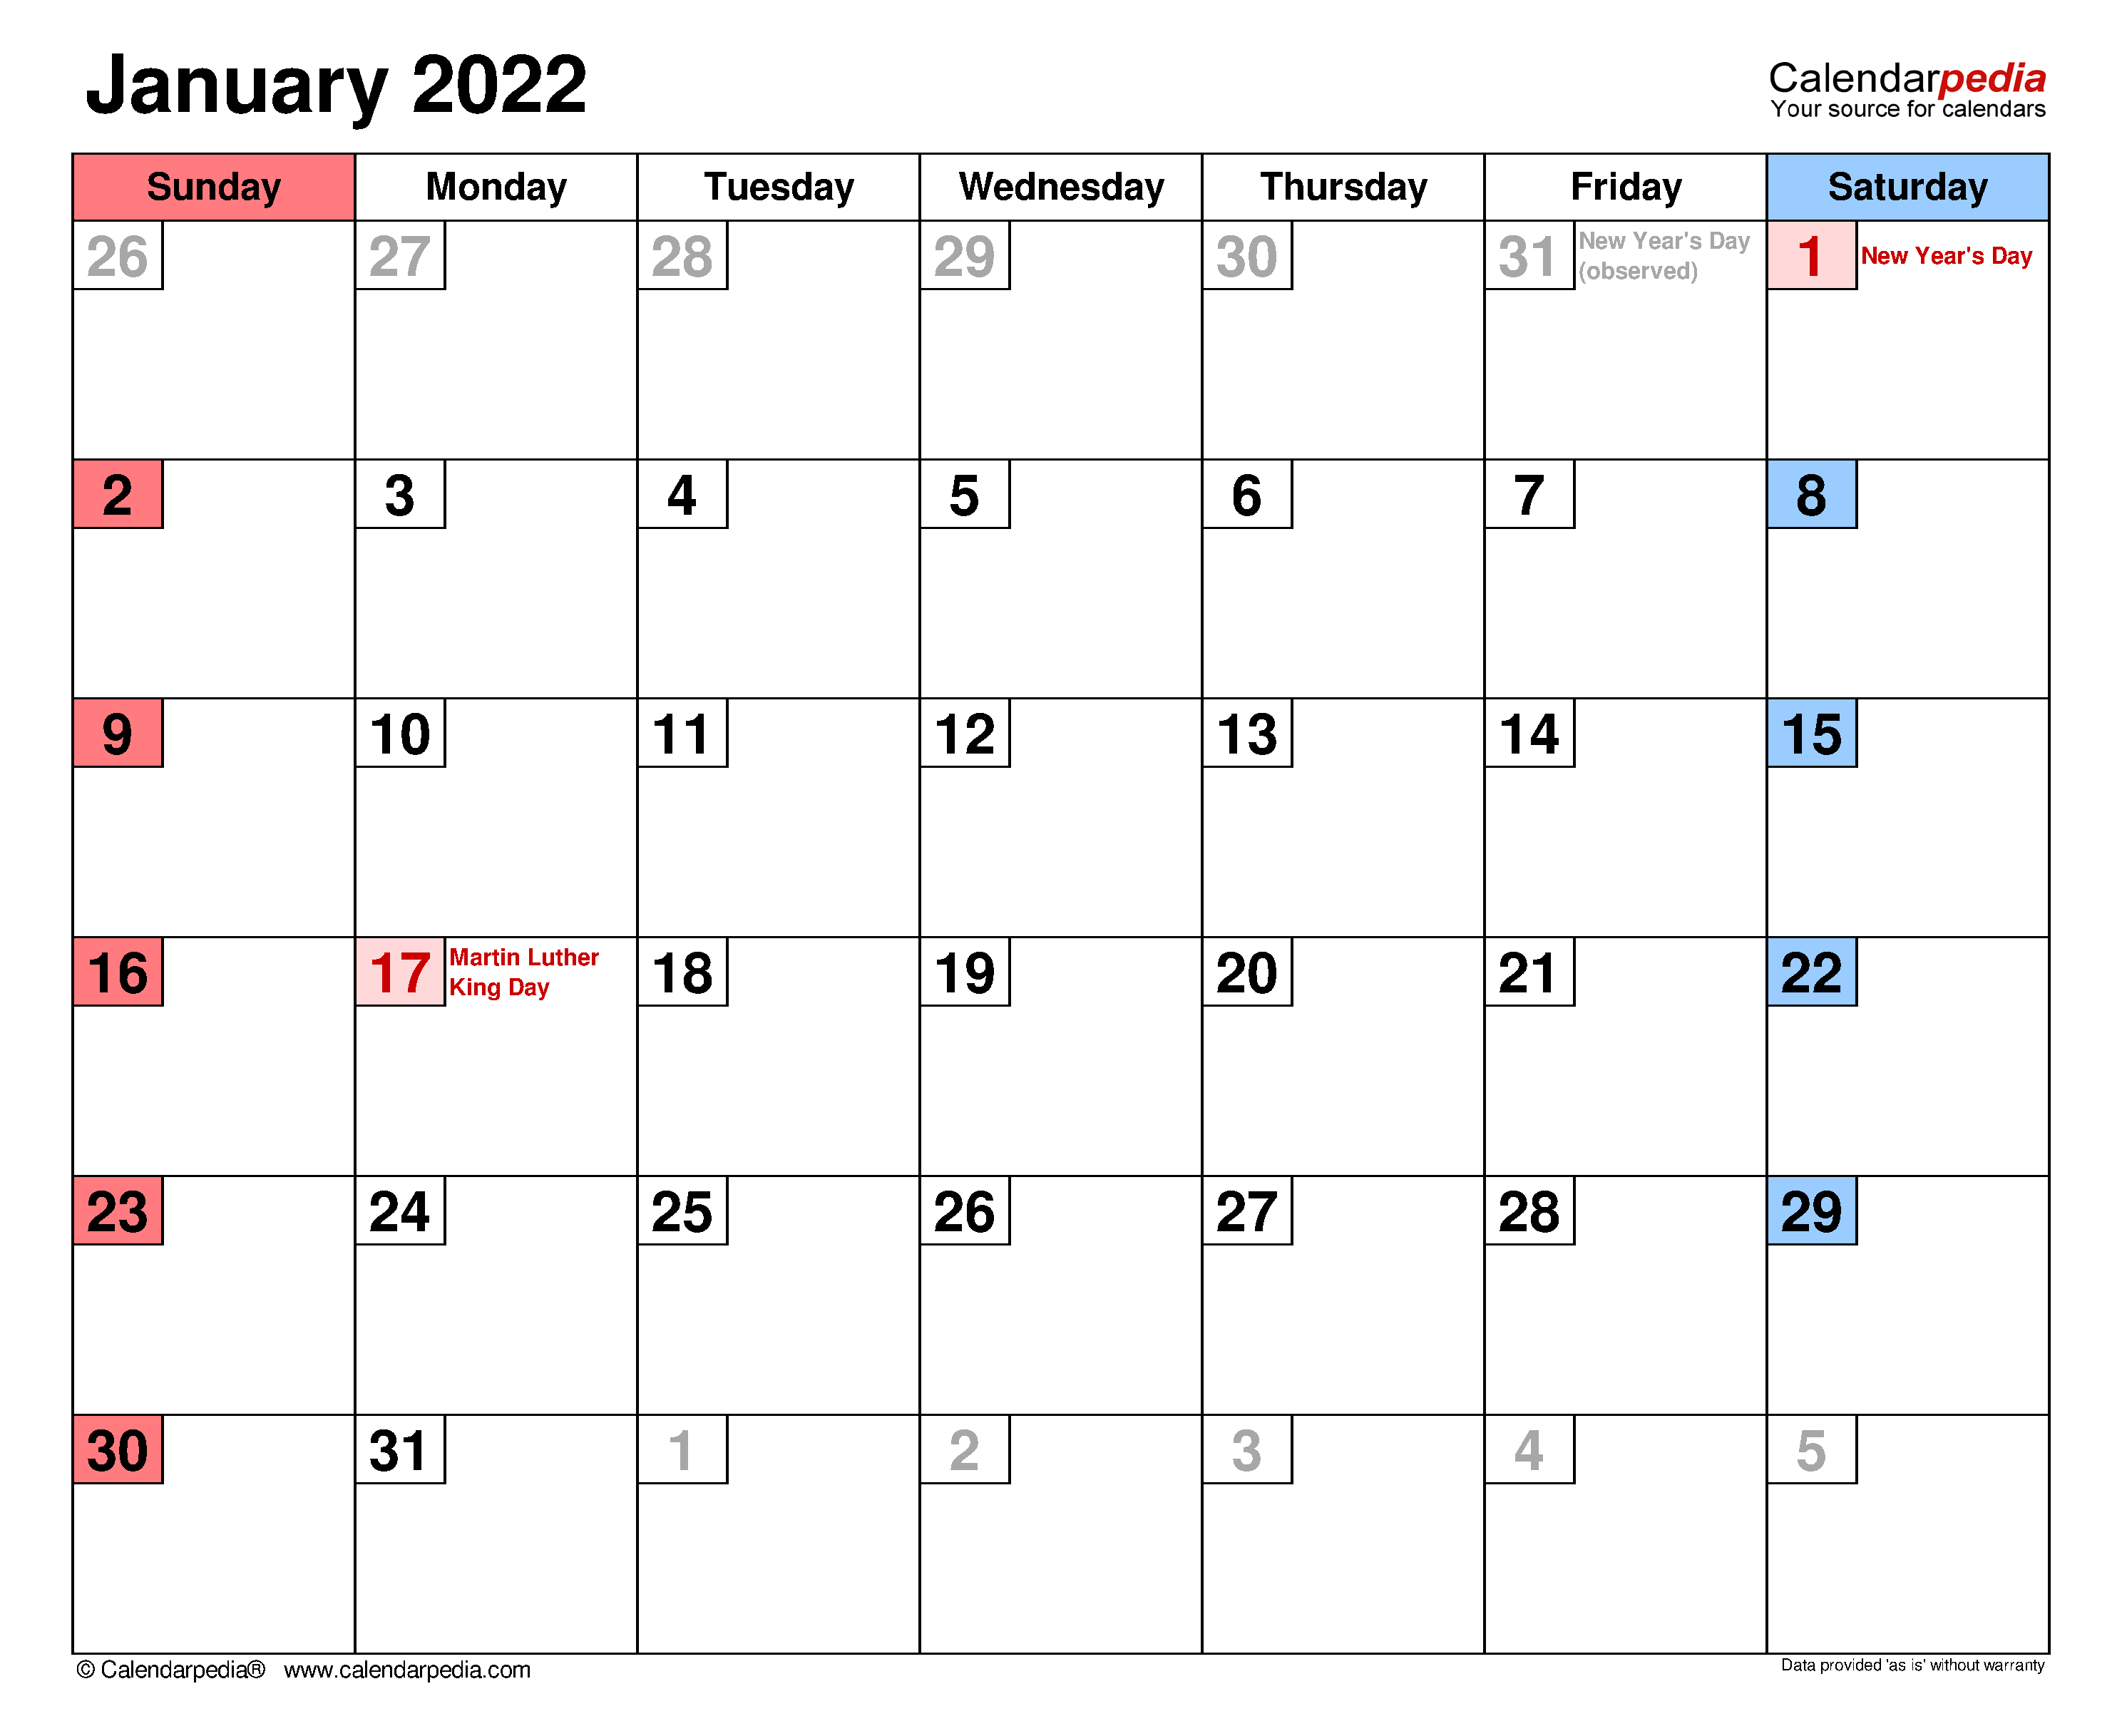 January 2022 Calendar | Templates For Word, Excel And Pdf With Calendar 2022 January Printable